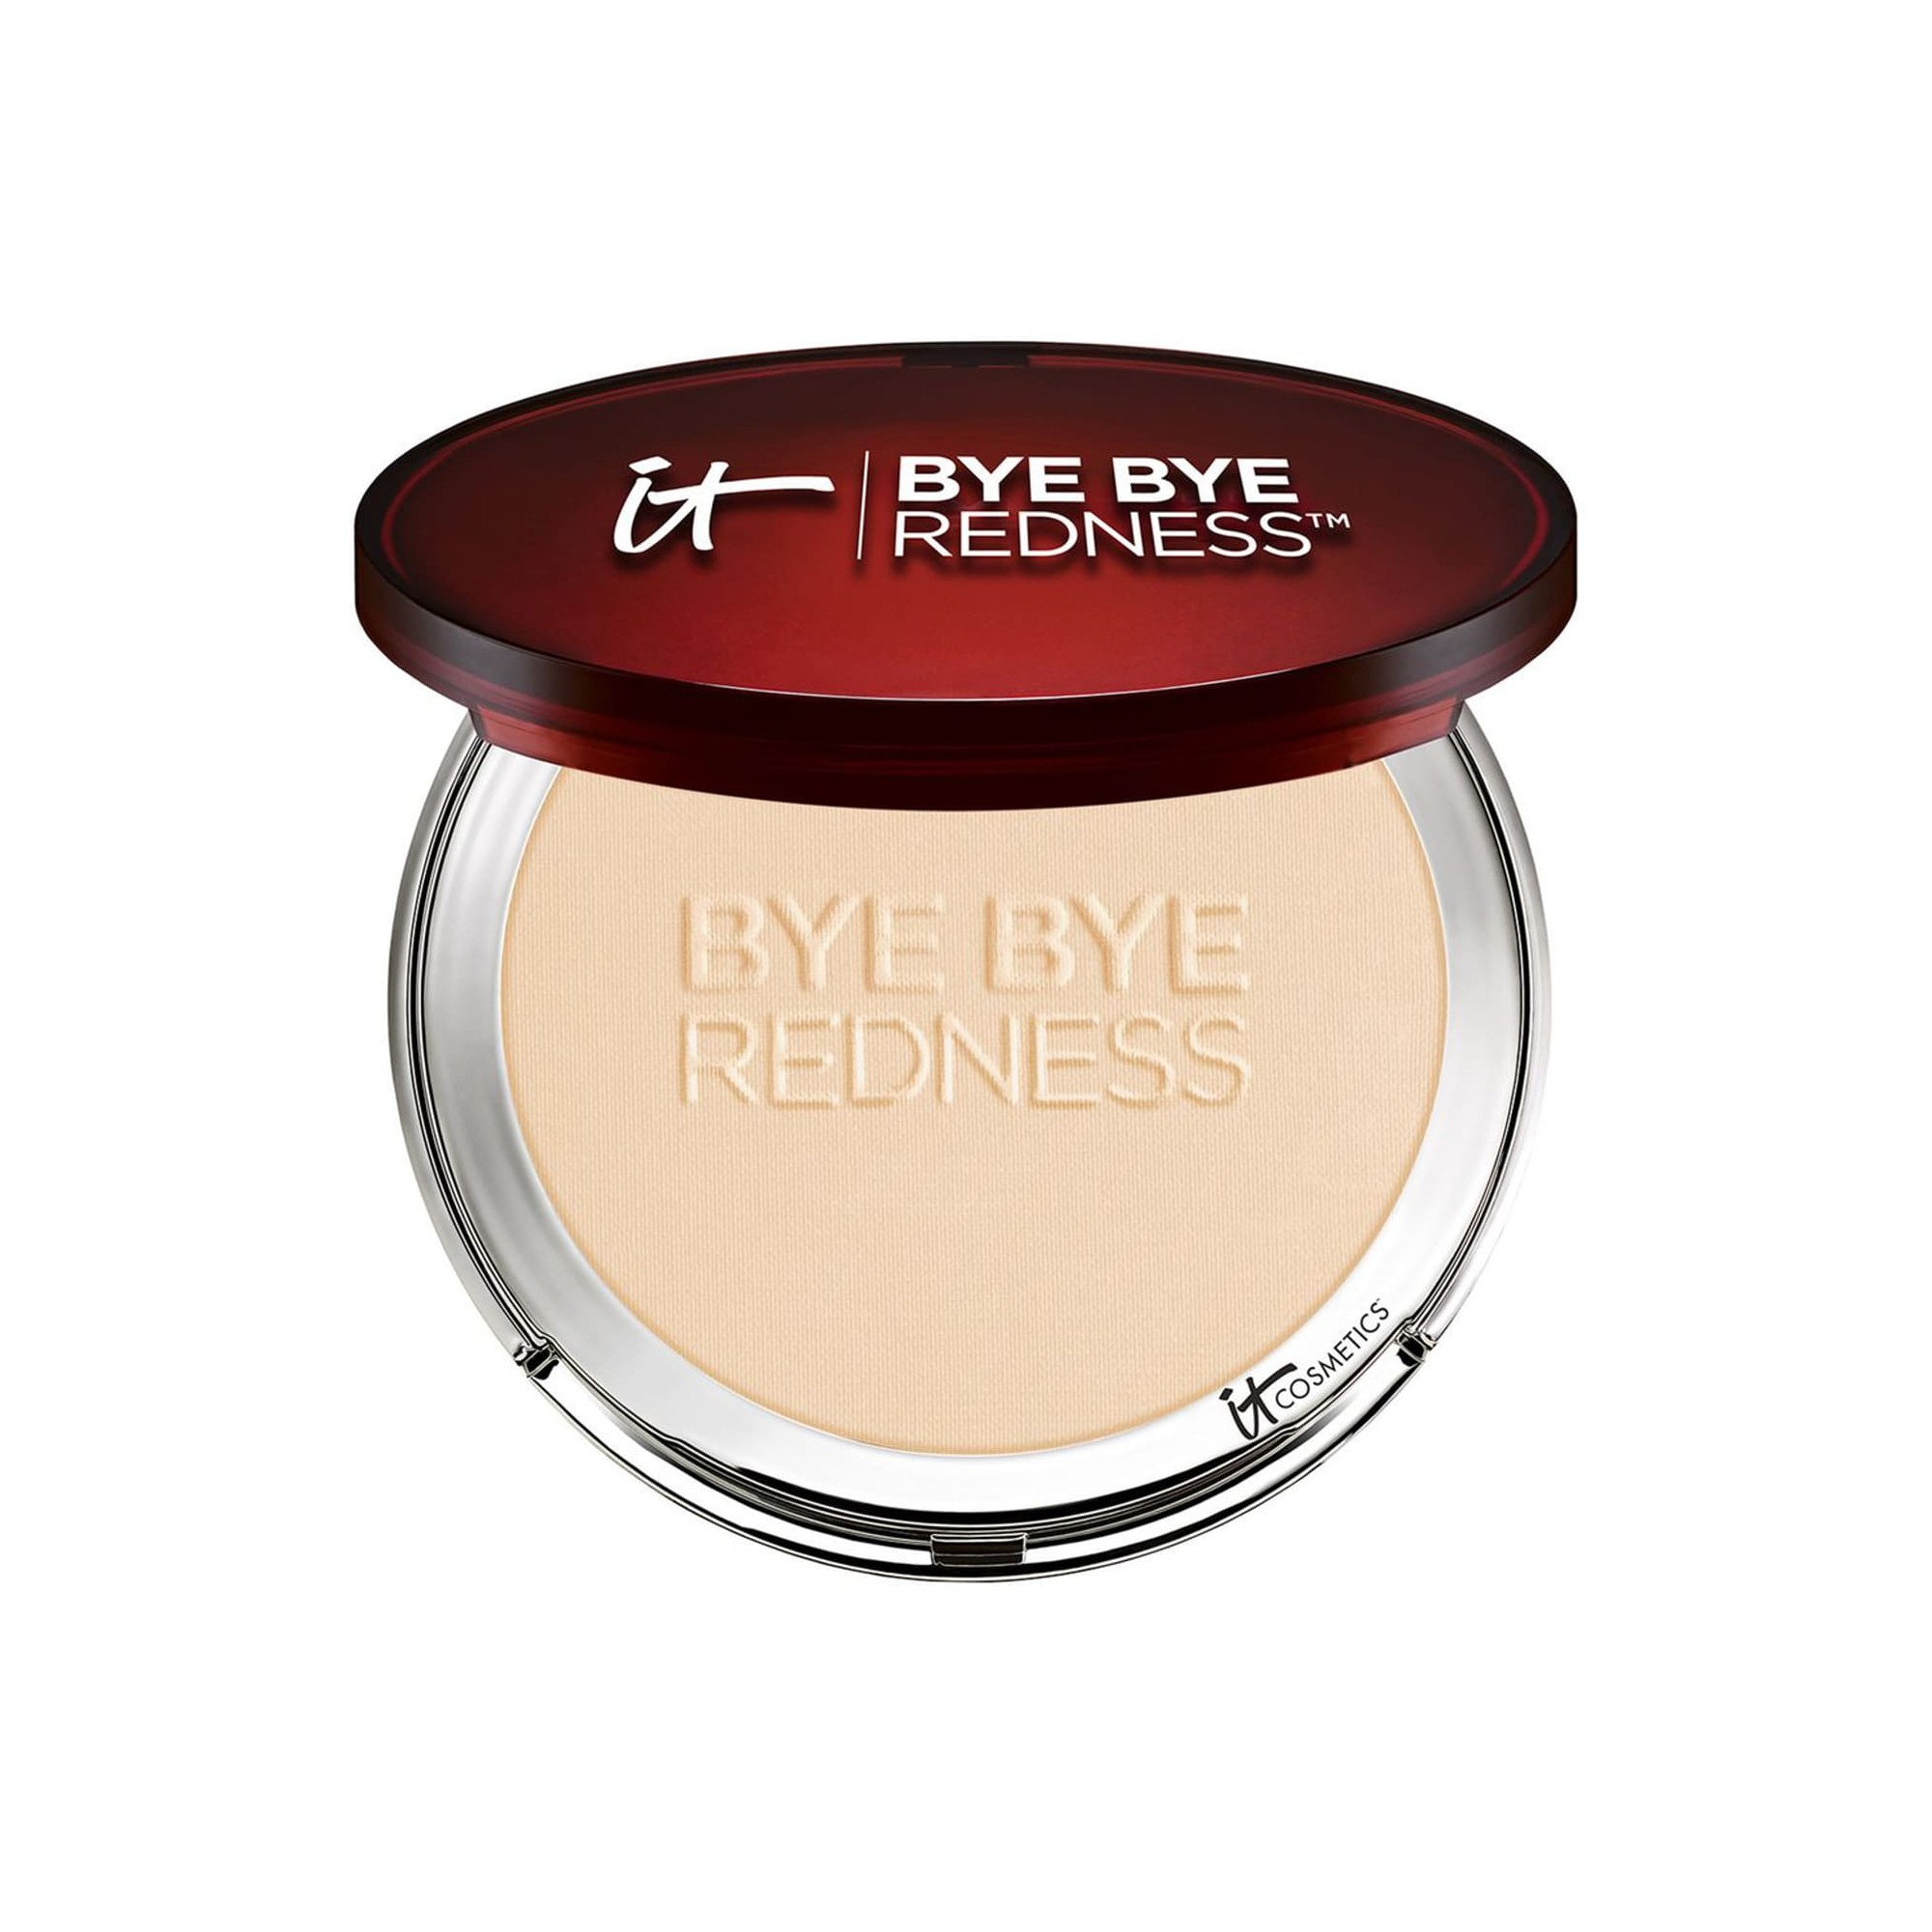 IT Cosmetics Bye Bye Redness Transforming Powder Light Beige